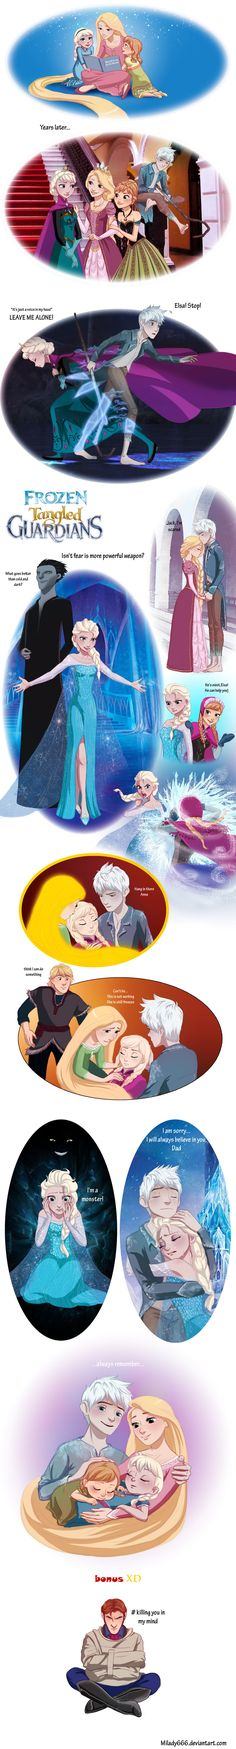 Rise of the Frozen Tangled Guardians - Jack Frost and Rapunzel w/ Elsa and Anna Crossover ~ I'm not sure what I think of this. I don't ship Jack X Rapunzel, I always thought they were cousins, but this is interesting. Haha look at Hans.